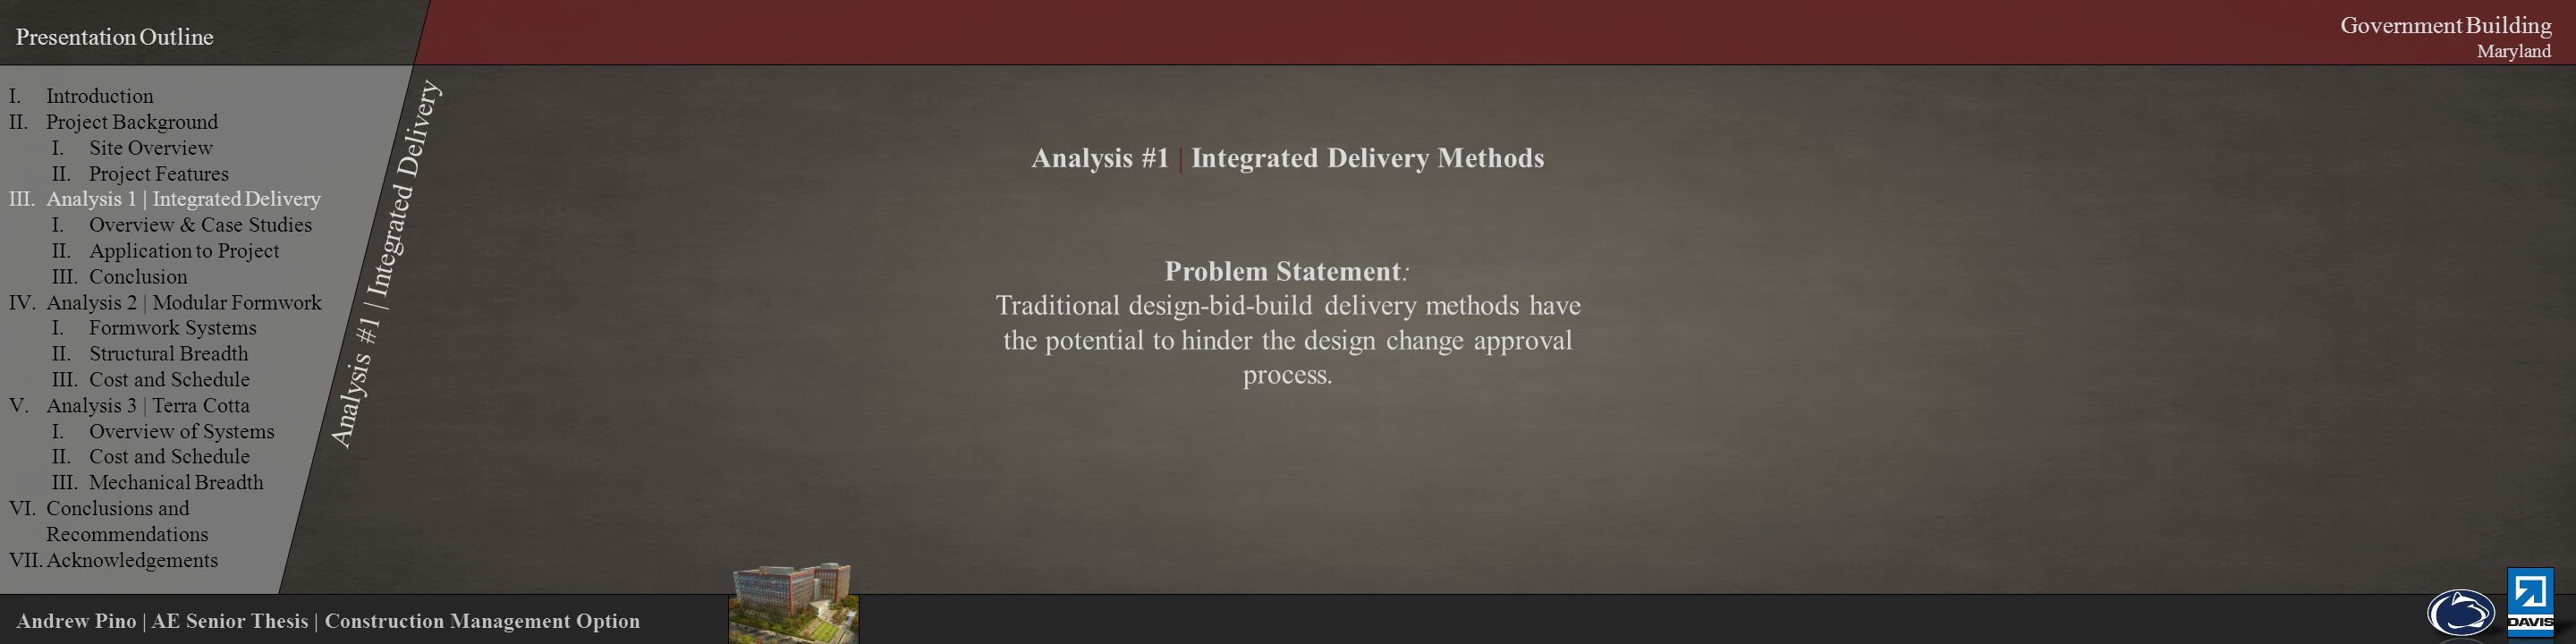 Andrew Pino | AE Senior Thesis | Construction Management Option Presentation Outline Government Building Maryland Analysis #1 | Integrated Delivery Methods Problem Statement: Traditional design-bid-build delivery methods have the potential to hinder the design change approval process.